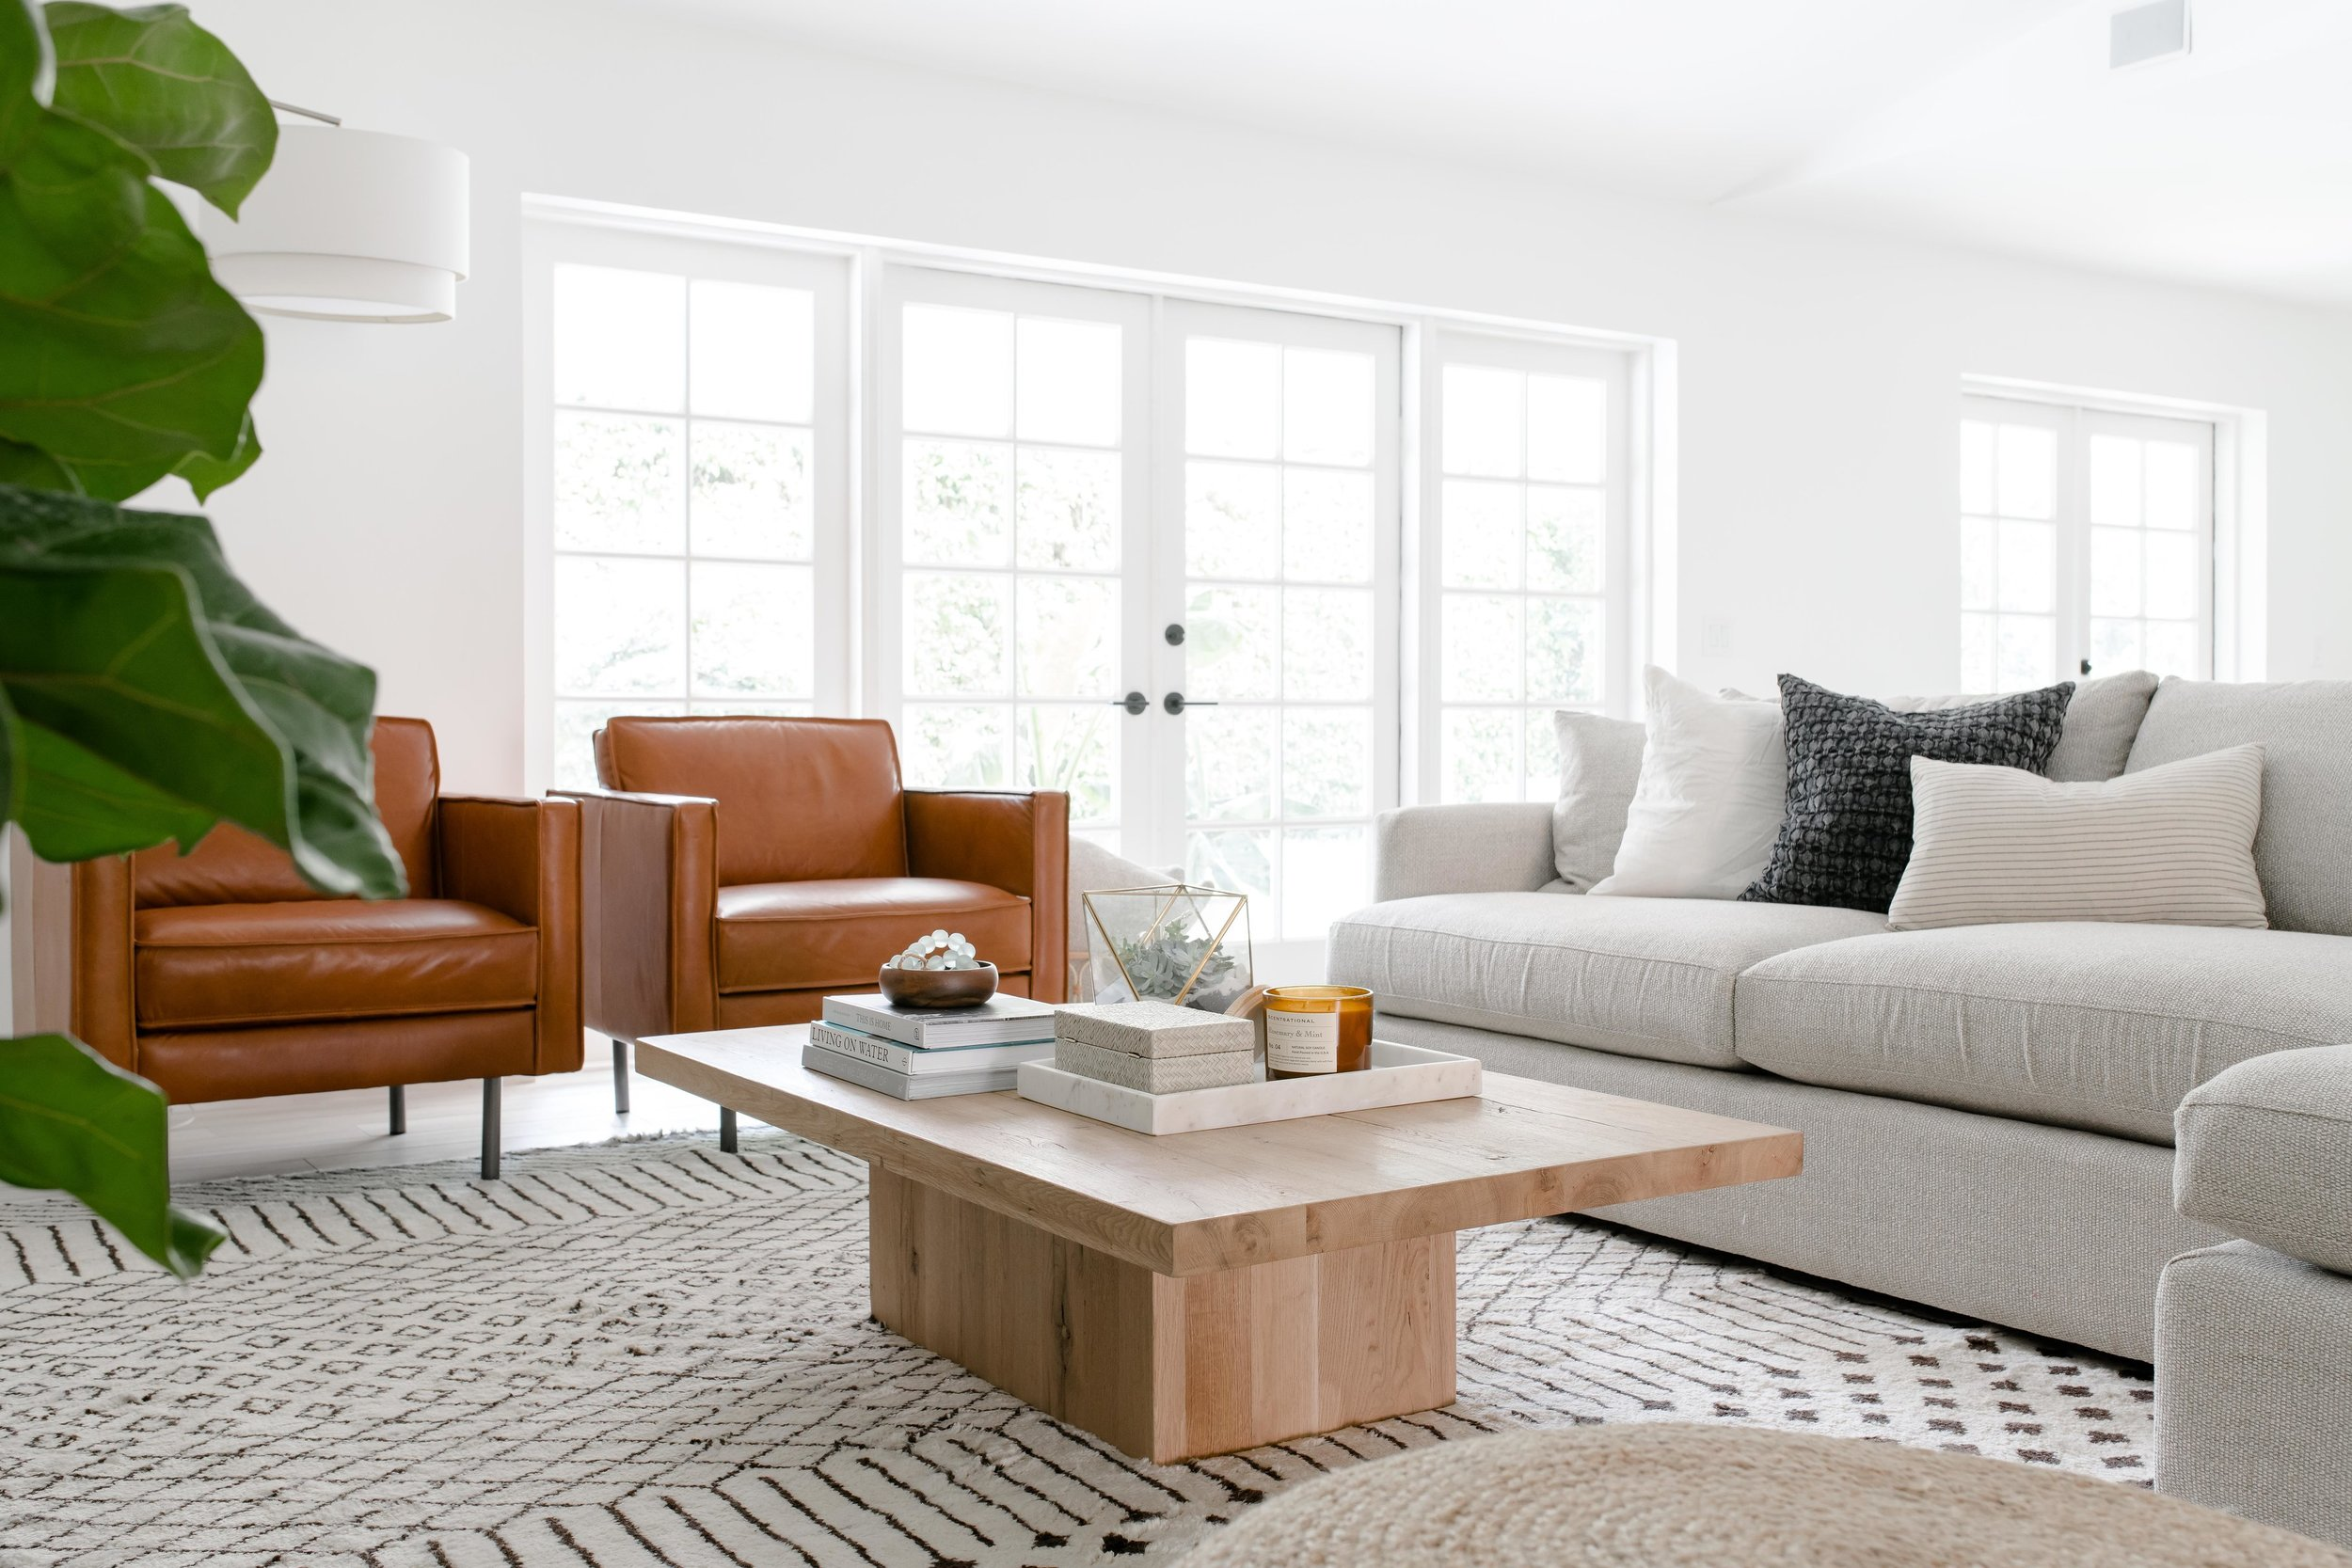 modern living room with neutral sectional, warm wooden coffee table, leather accent chairs, wood tile floors - the habitat collective - project casinha linda